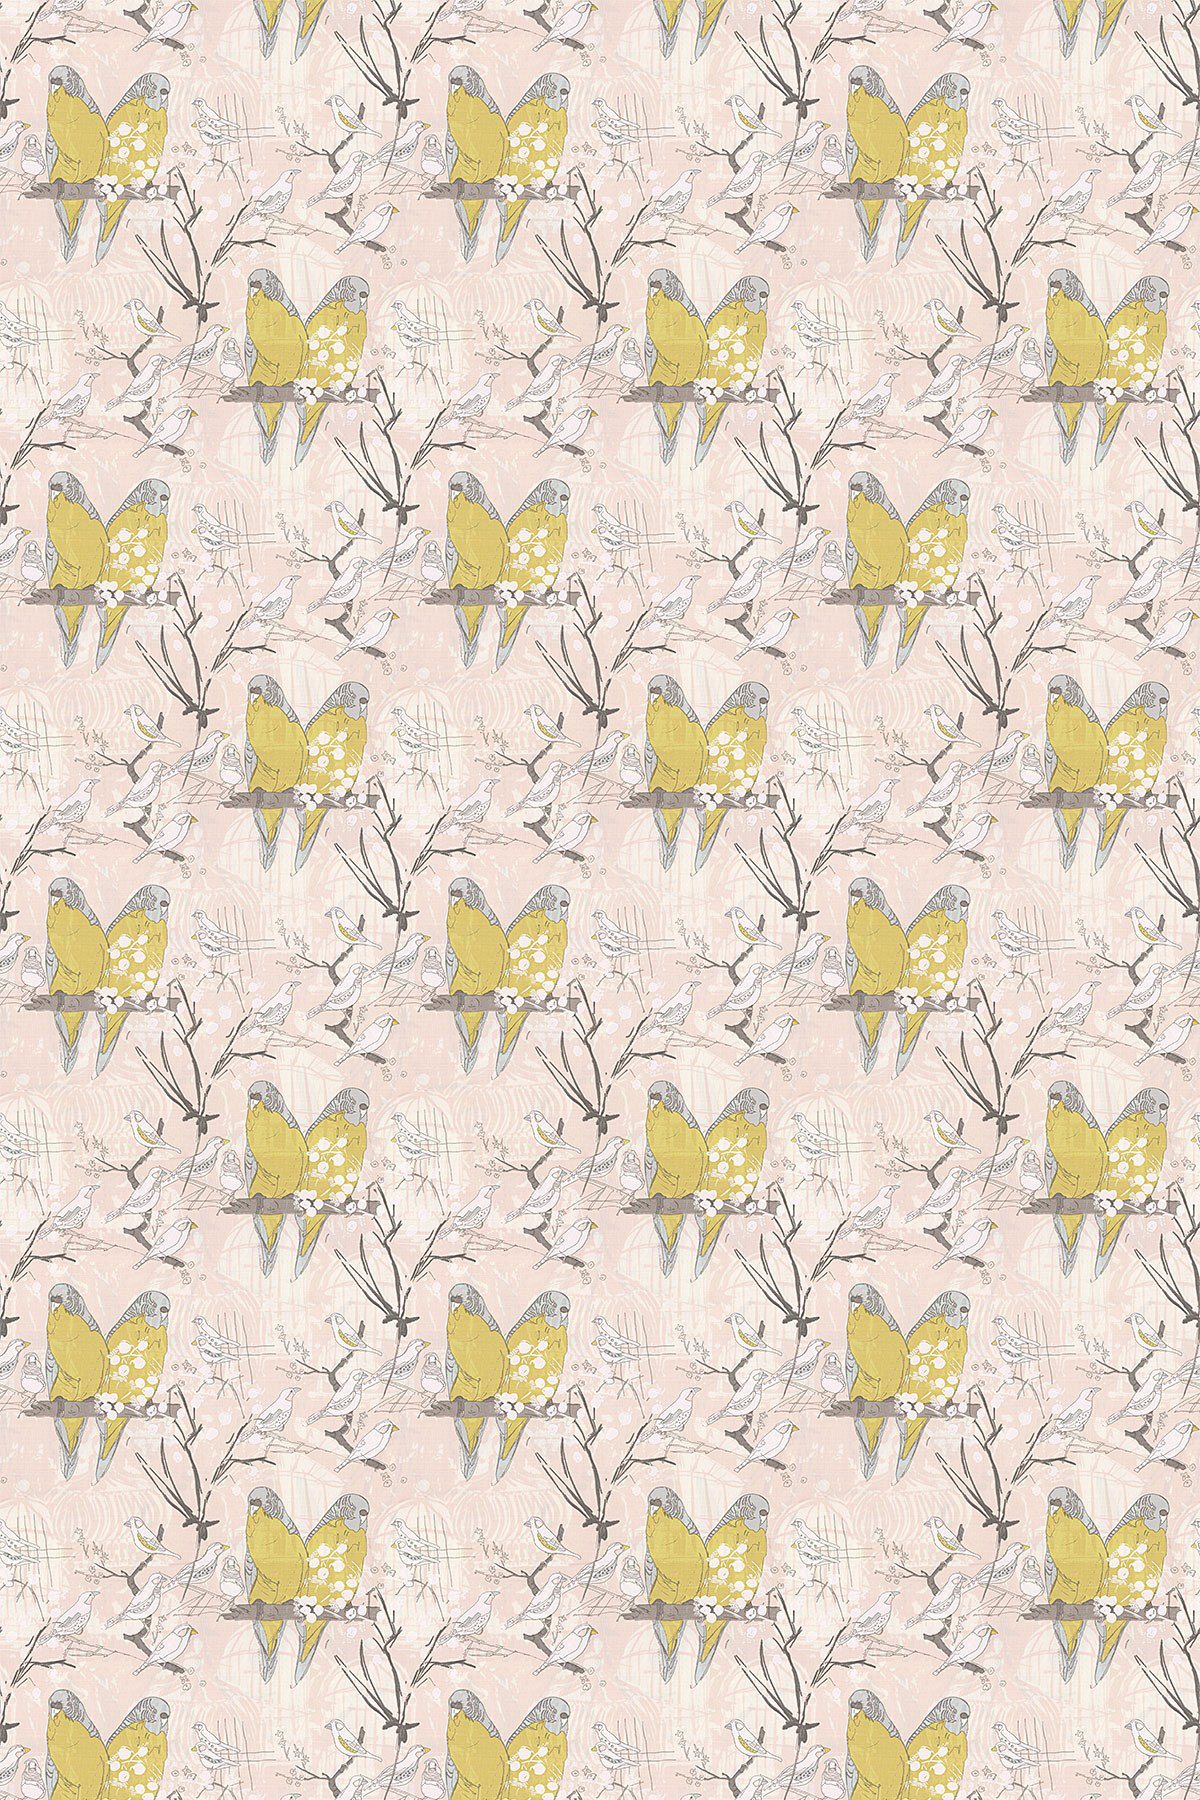 Image of Belynda Sharples Fabric Linen Union Budgie 01, BUDGIE 01